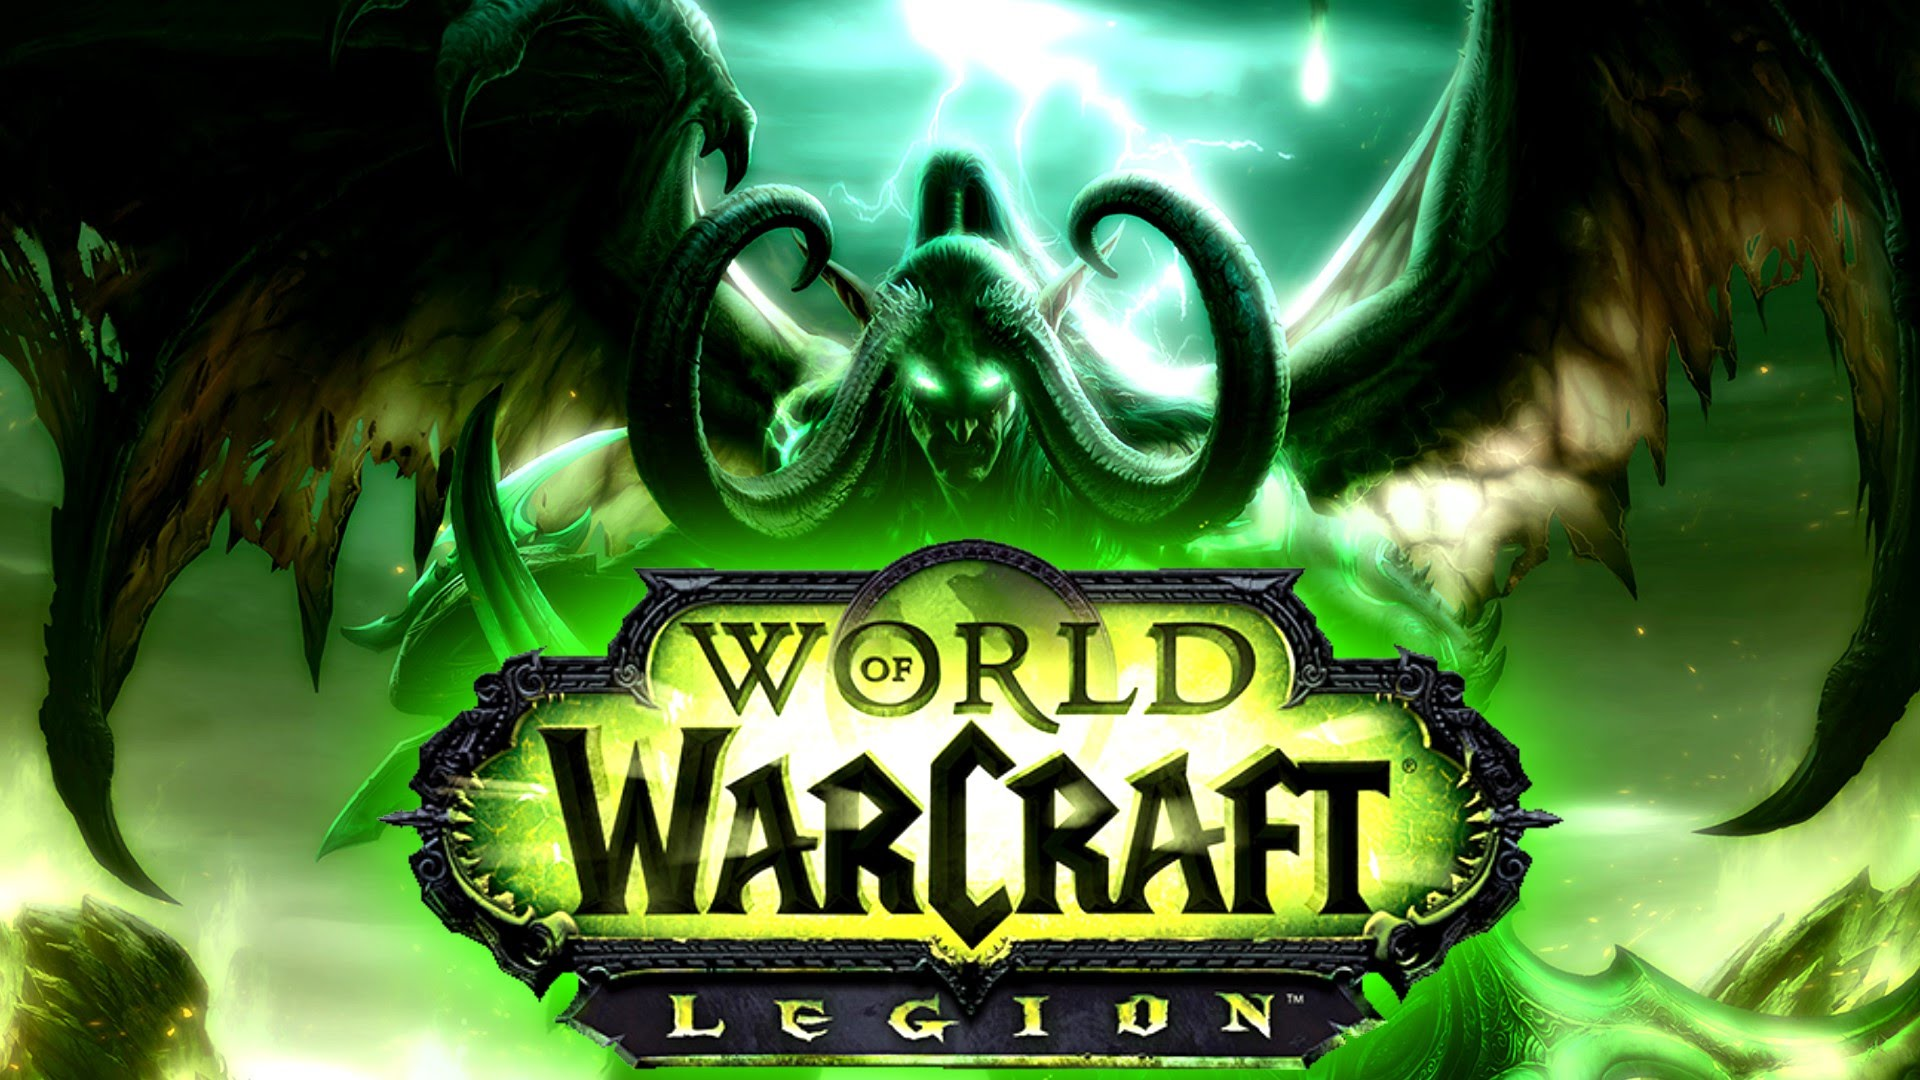 World of Warcraft: Legion (Battle.net) RU and 100 lvl